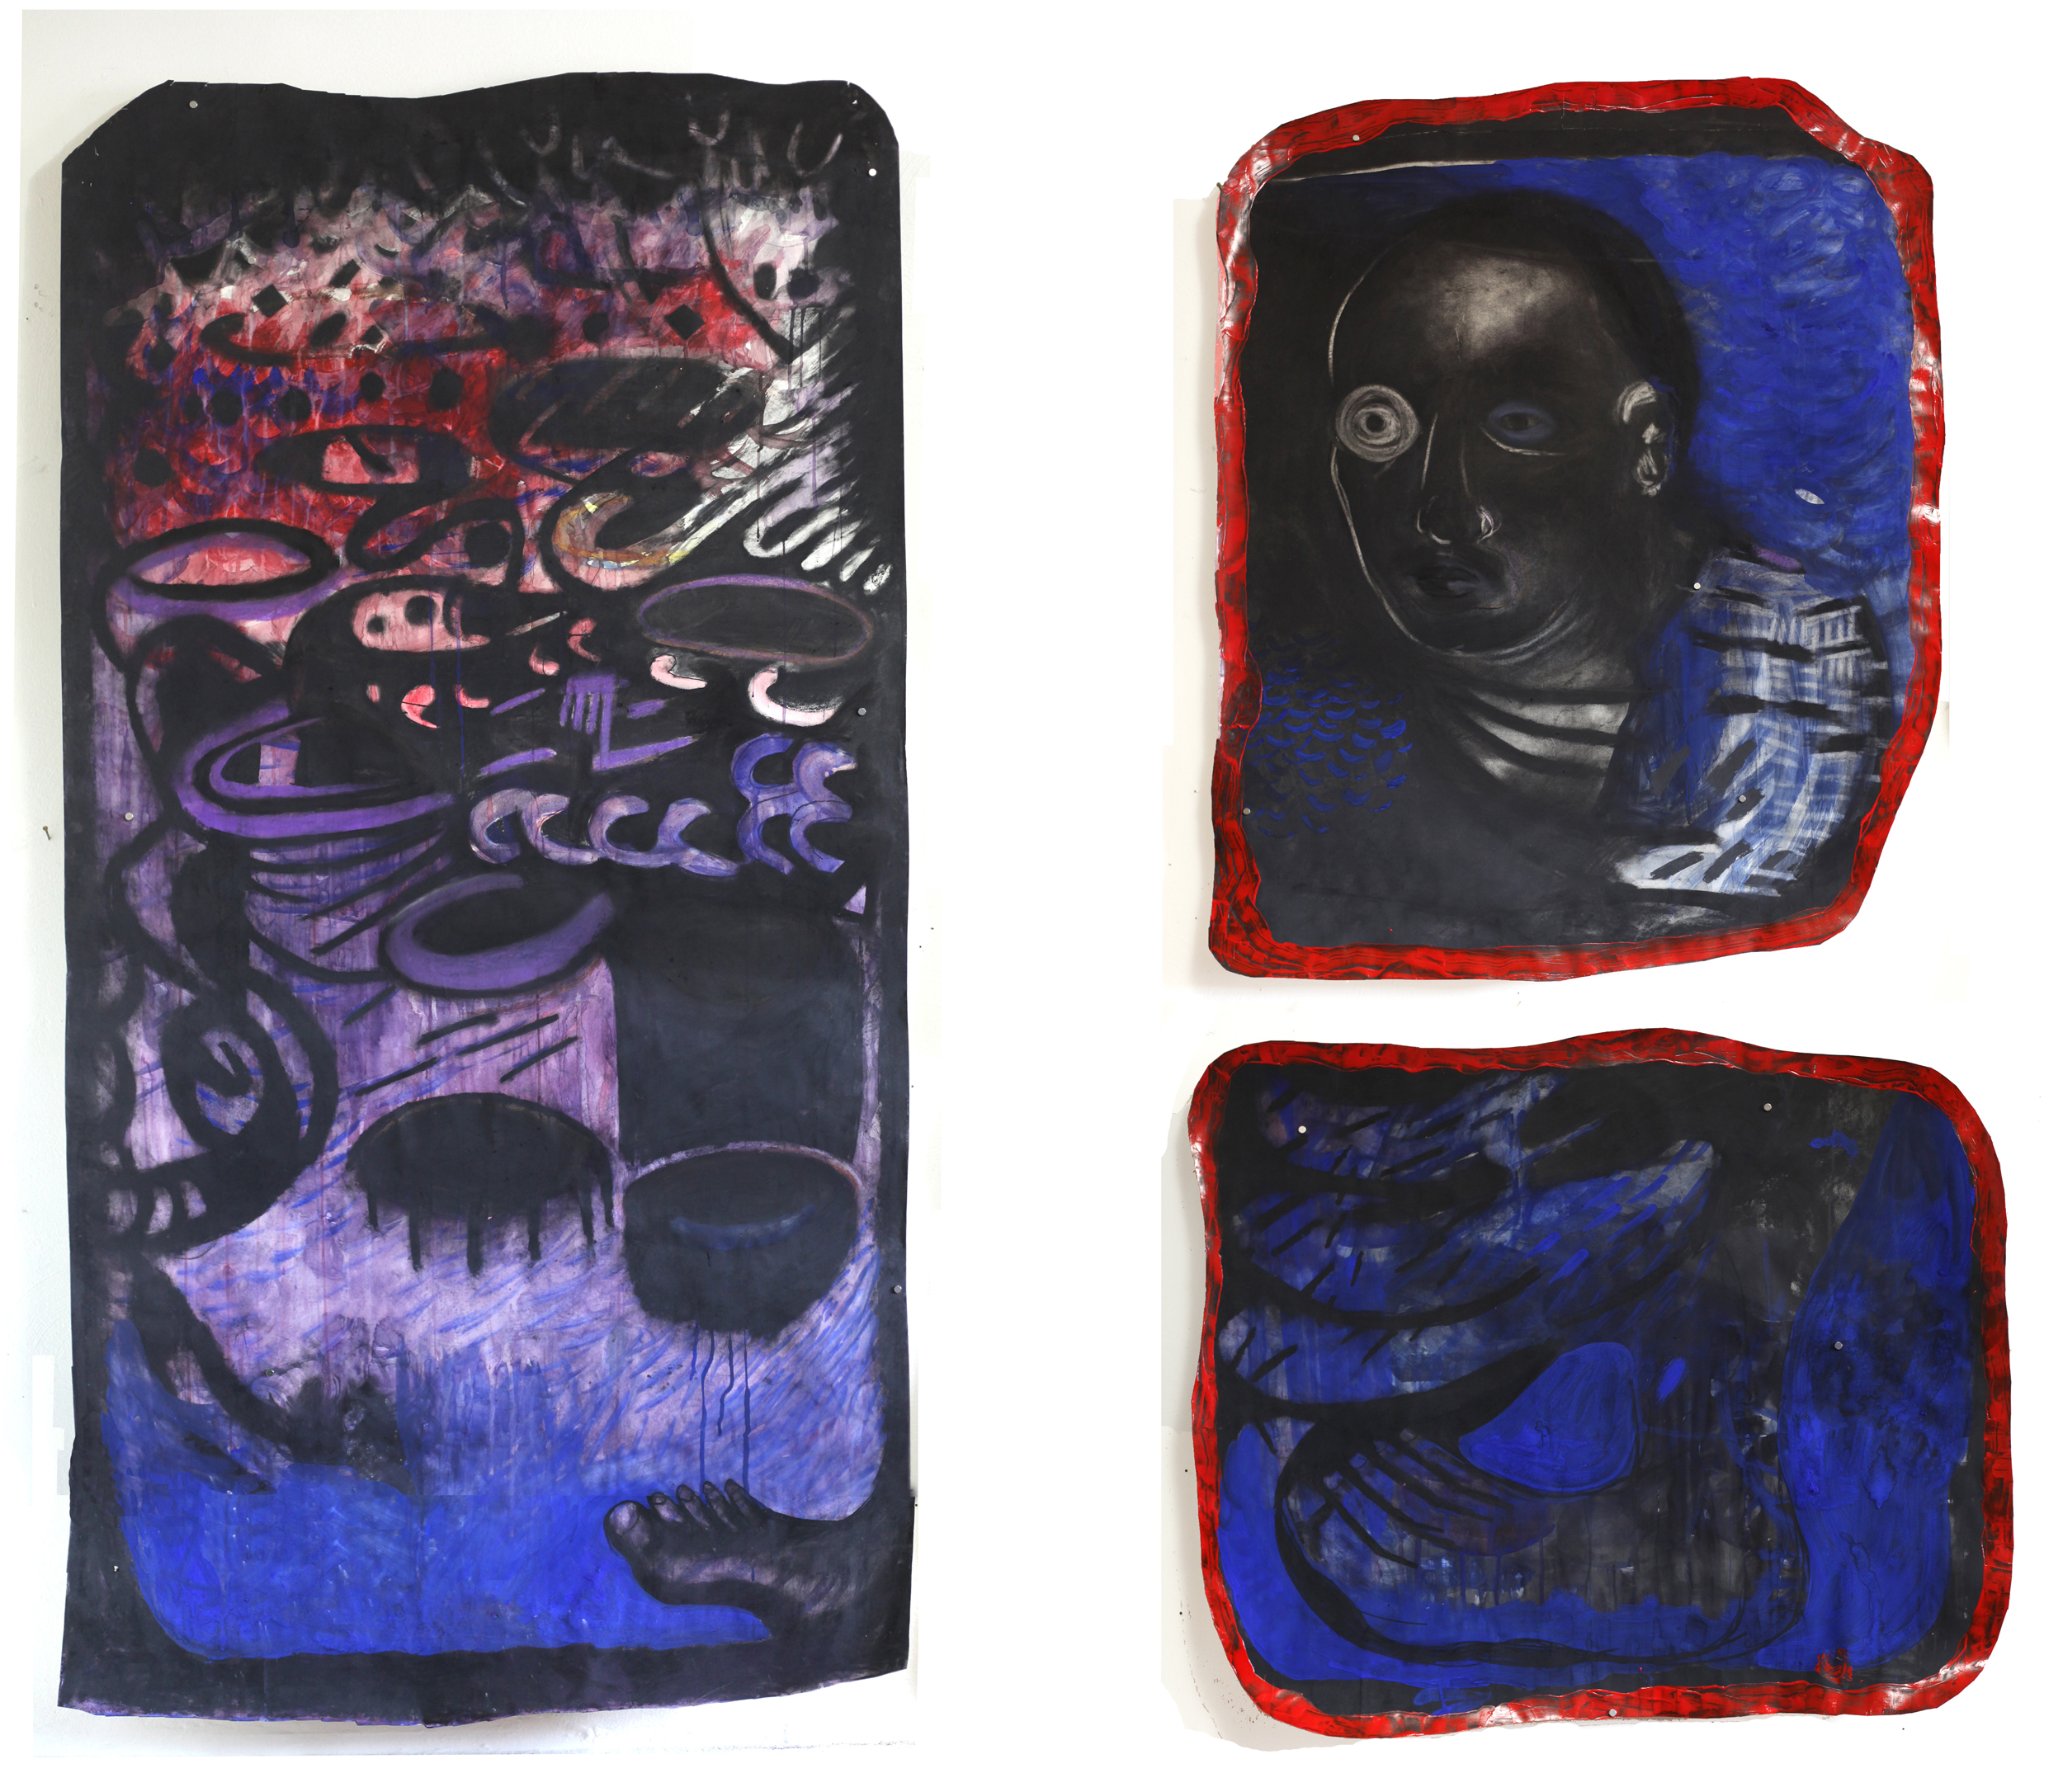 Jennifer Meridian  Scroll for Justice(Bomb and Foot ) mixed media on paper (left)  Portrait of Martin(Return to Mother)  mixed media on paper (top right) and  Martin's Foot Never Hesitates  mixed media on paper (bottom right)